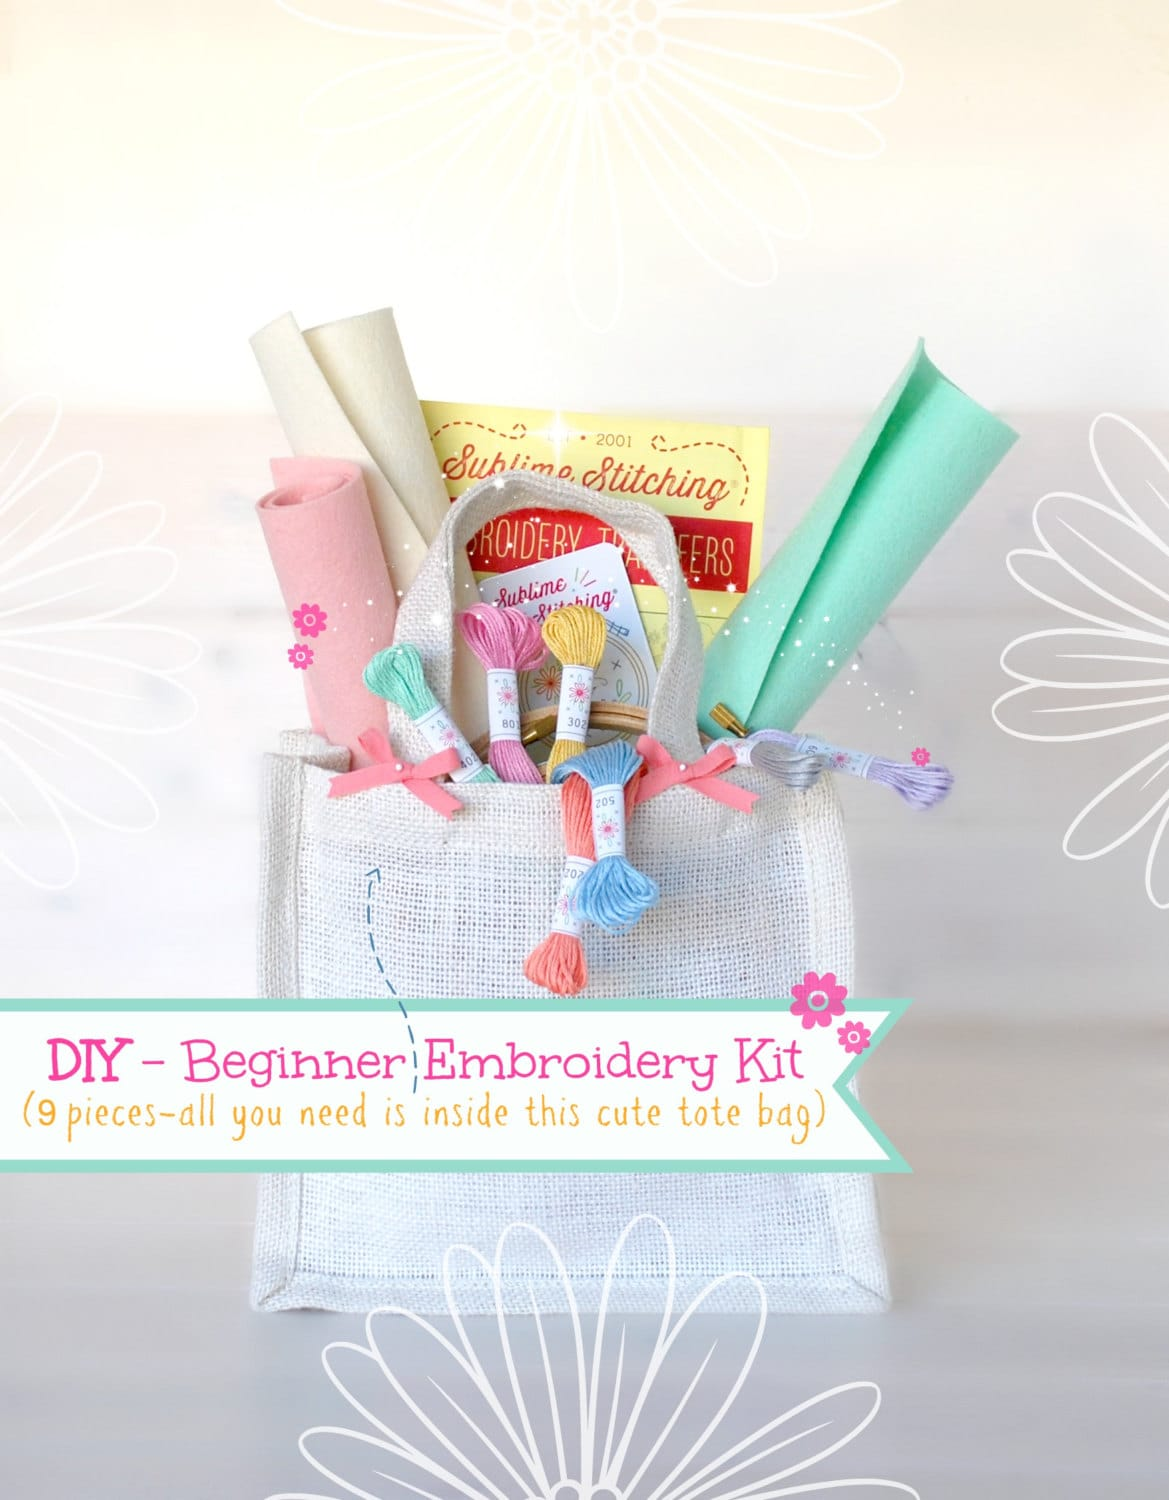 Diy hand embroidery kit beginner learn